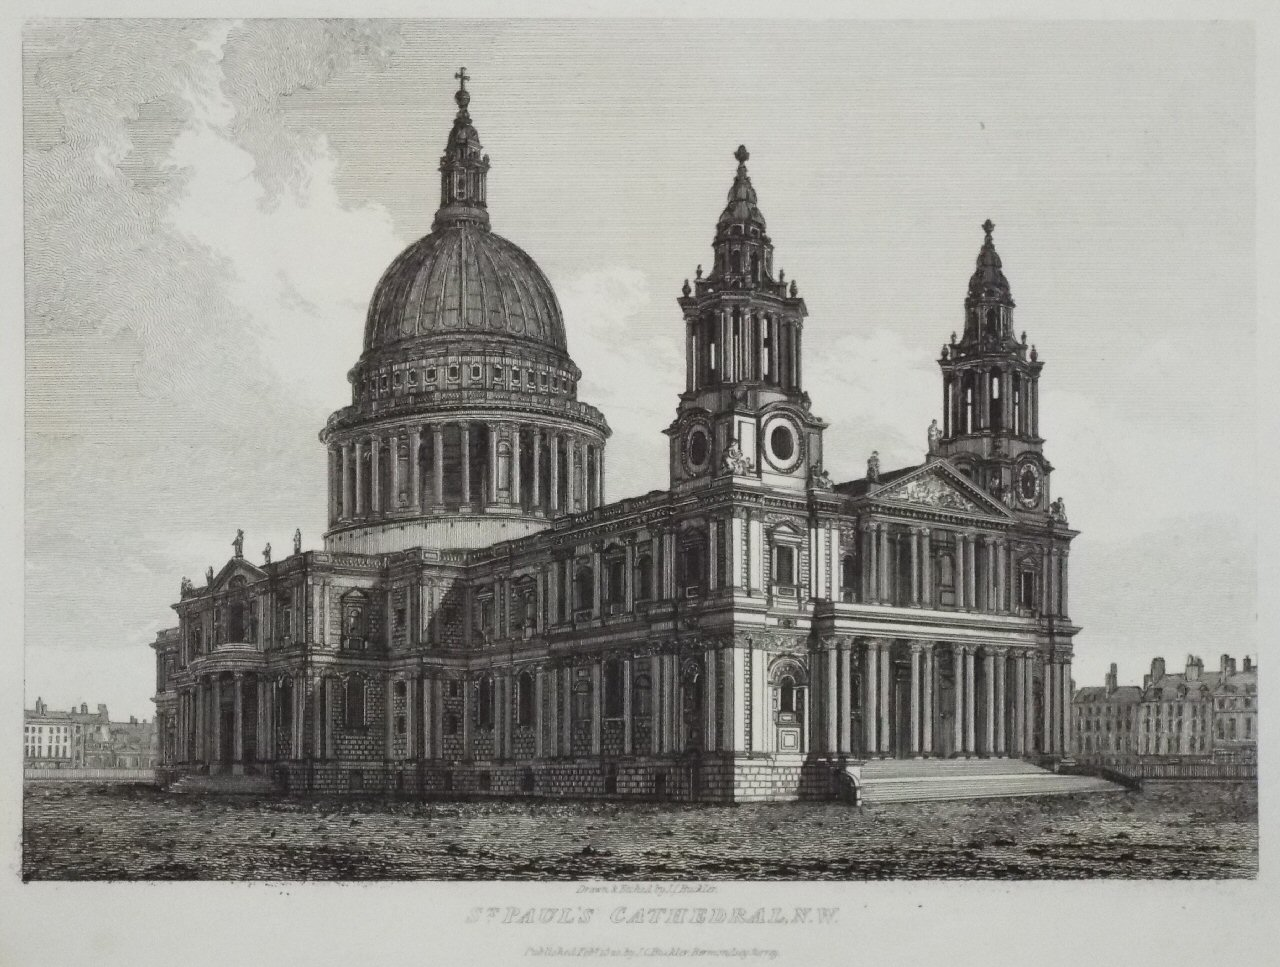 Etching - St. Paul's Cathedral, N.W. - Buckler